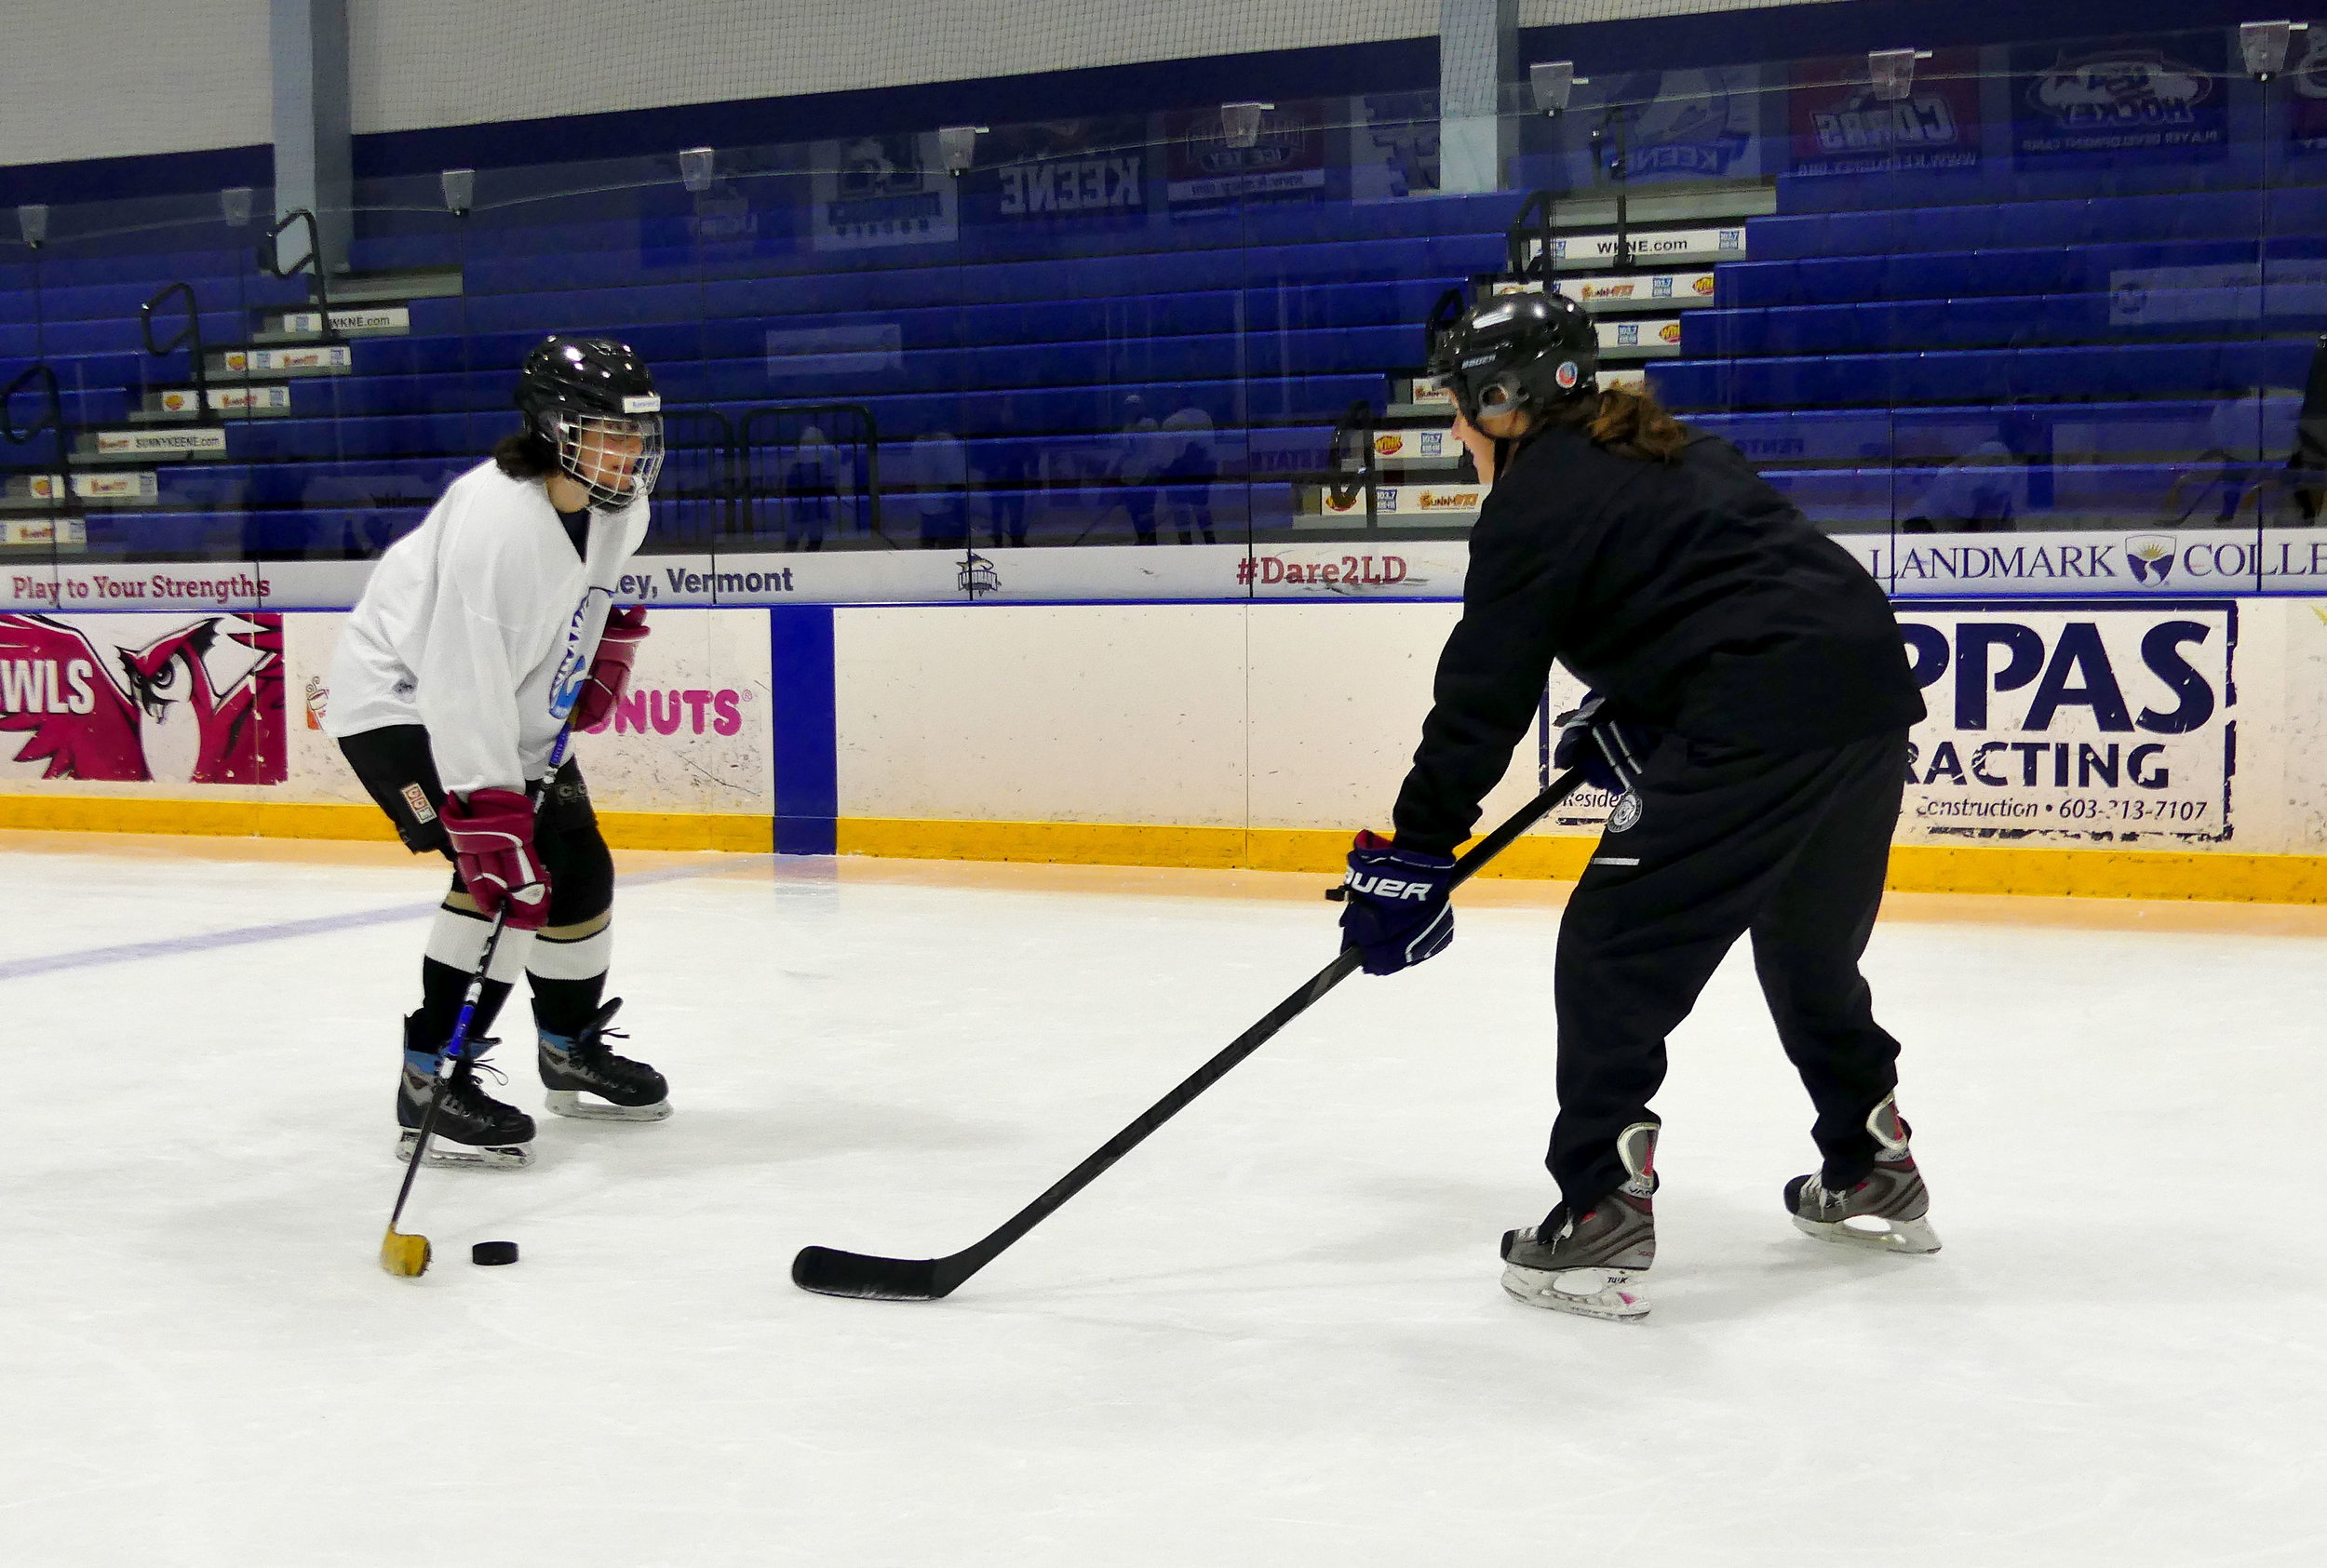 Testimonials - Hear what past clinic participants have to say about Dynamic Women's Hockey